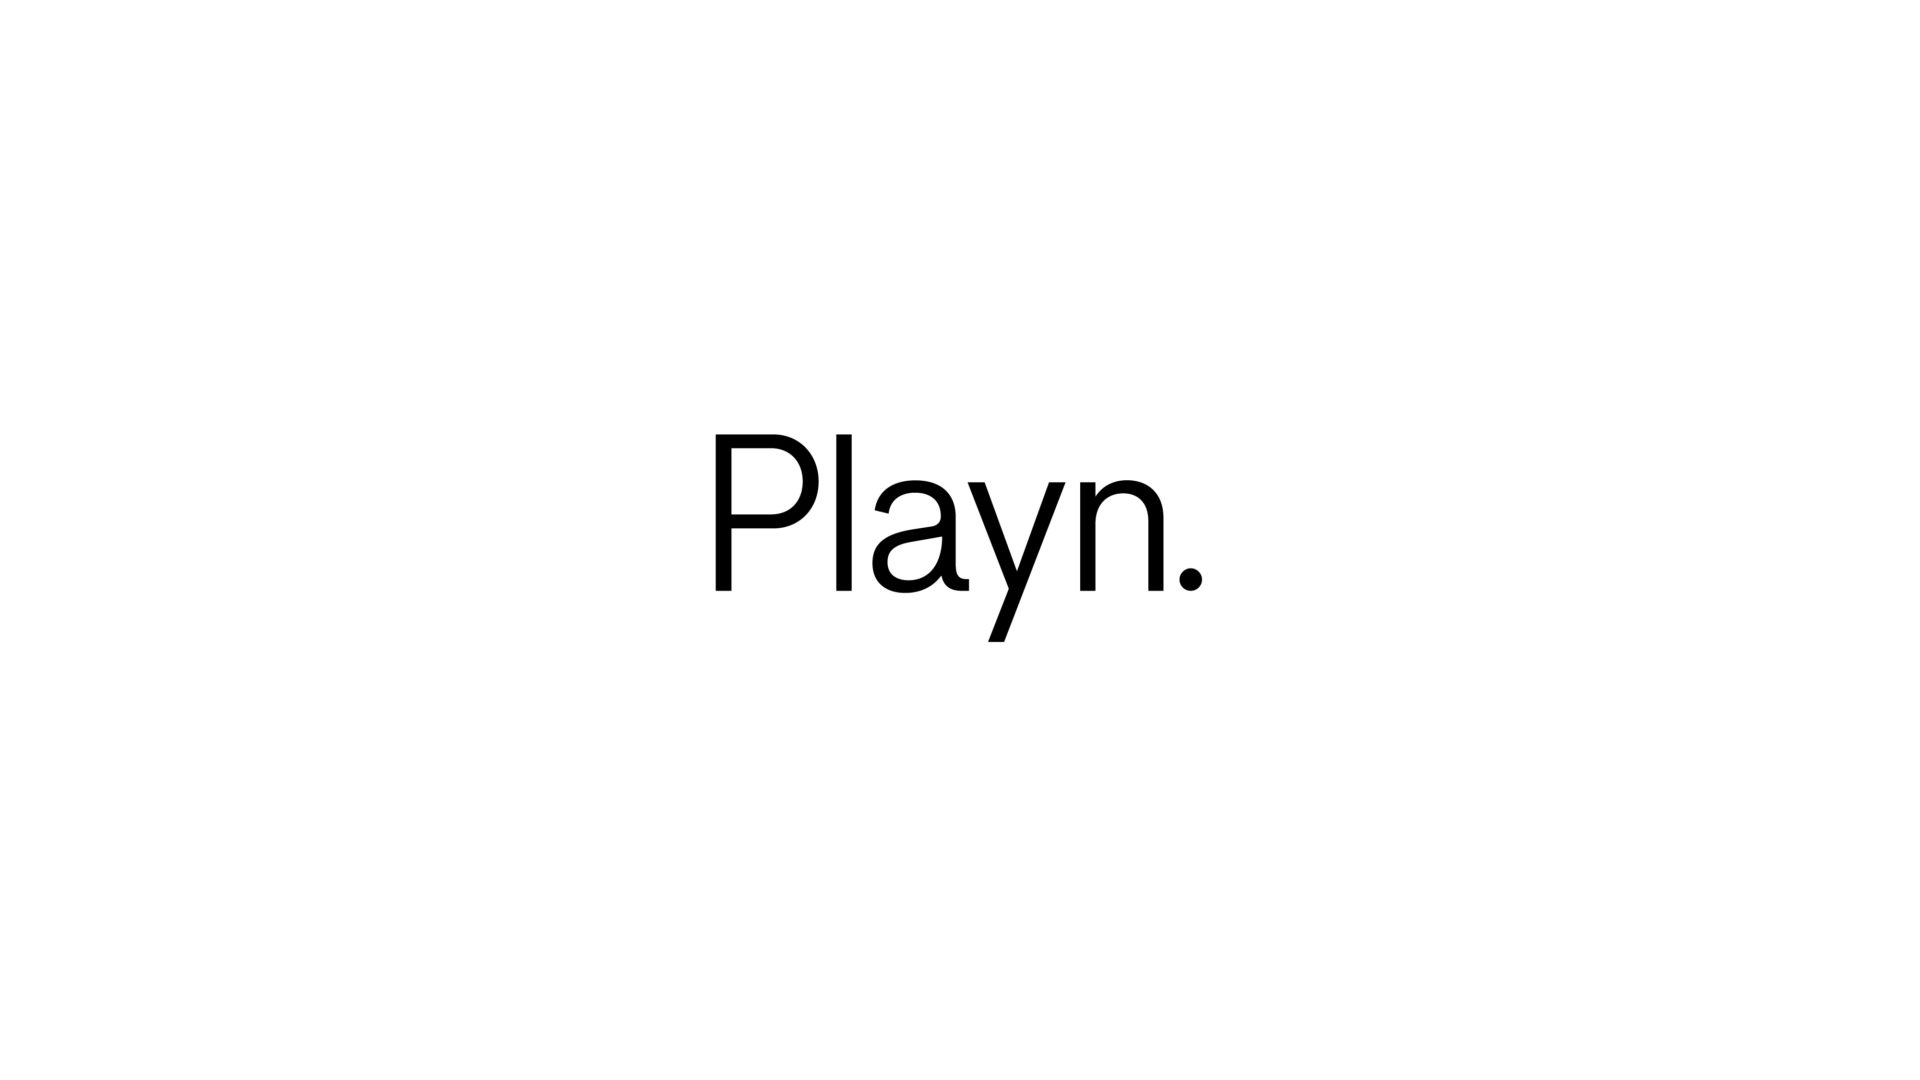 black and white Playn. logo